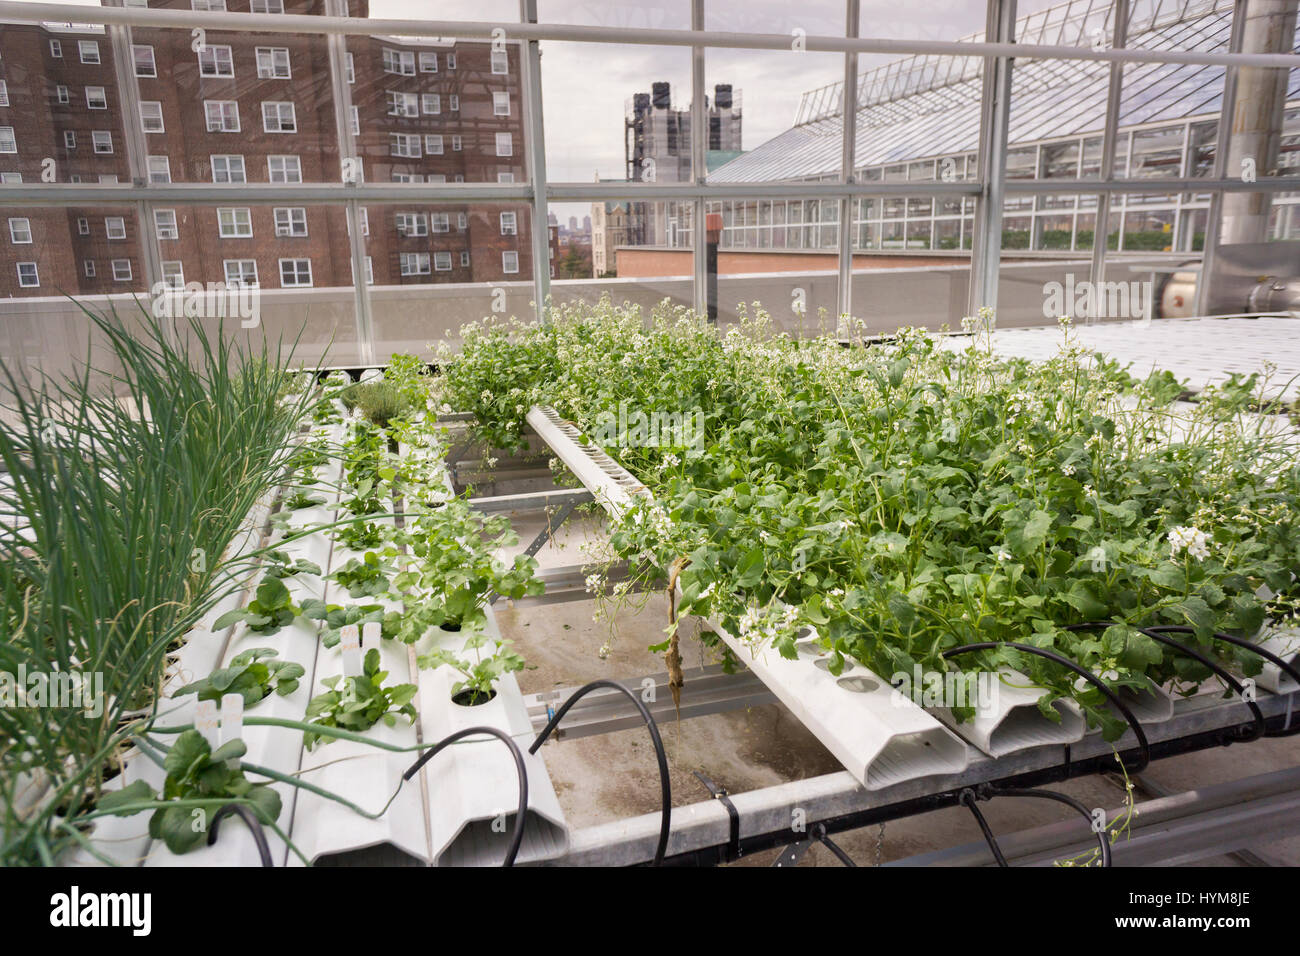 The greenhouse nyc - Hydroponic Farming Is Seen On A Rooftop Greenhouse On The Roof Of An Affordable Housing Building In The Bronx In New York On Thursday March 30 2017